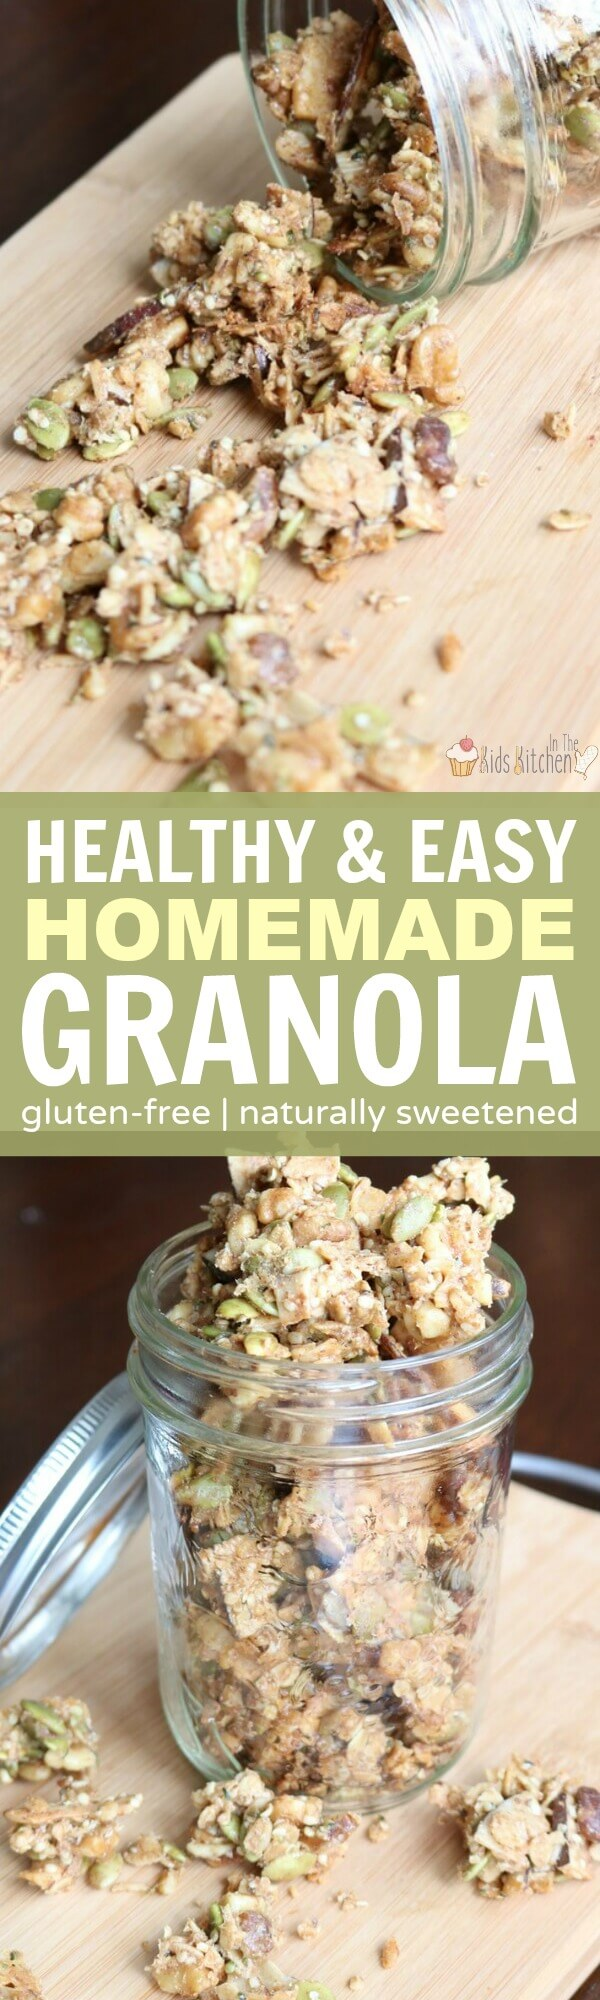 Granola is the perfect pantry staple for a busy family. It works on top of yogurt, smoothie bowls, or all by itself. Many store-bought brands contain artificial sweeteners or additives, so we make our own healthy, naturally-sweetened homemade crunchy granola! #snacks #healthyrecipes #granola #glutenfree